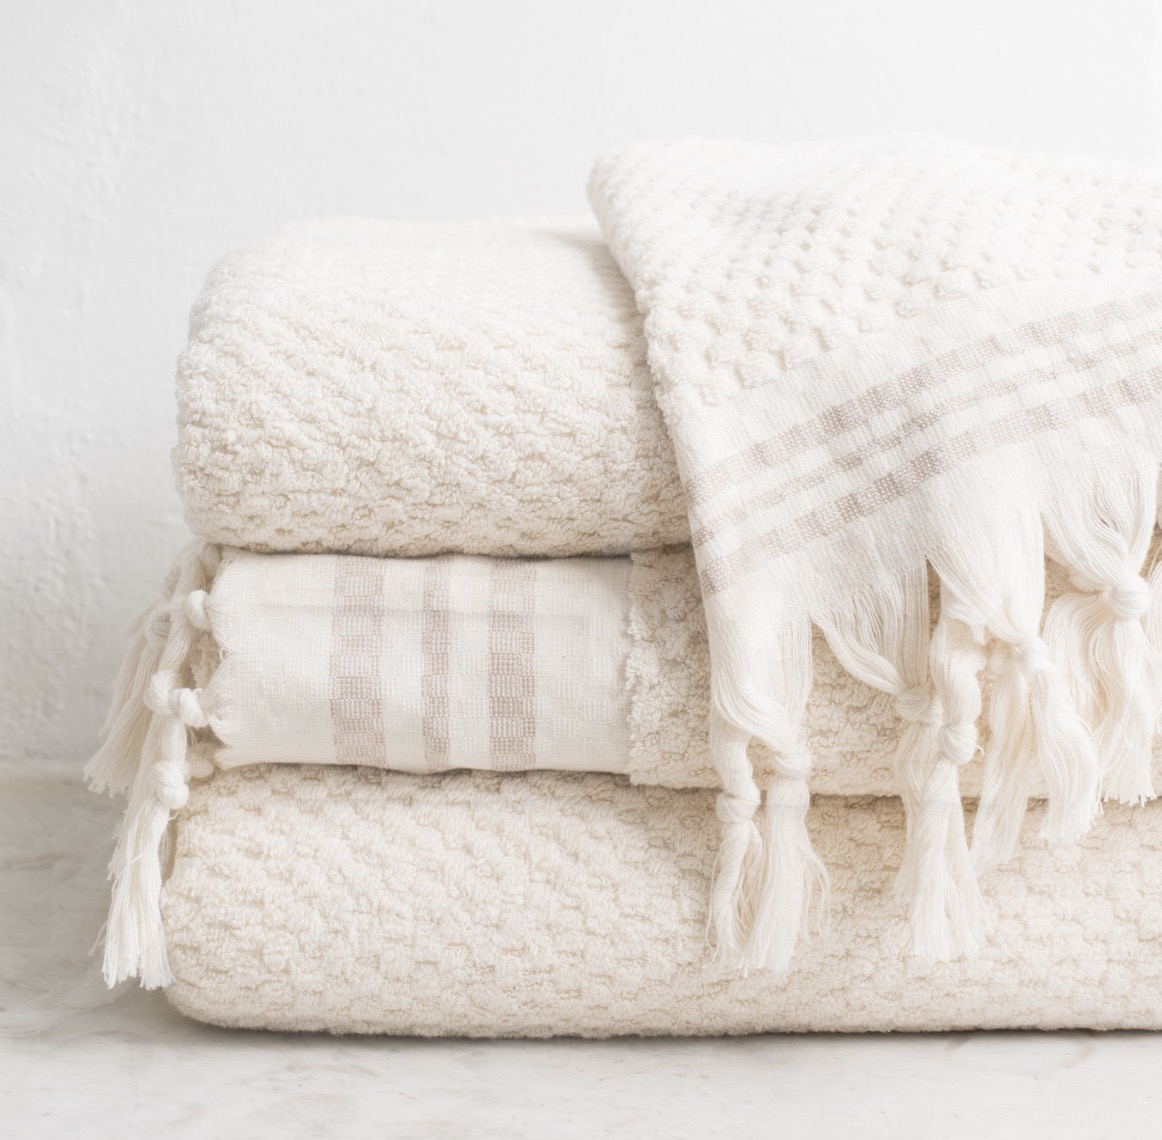 Turkish bath Towels, from $24